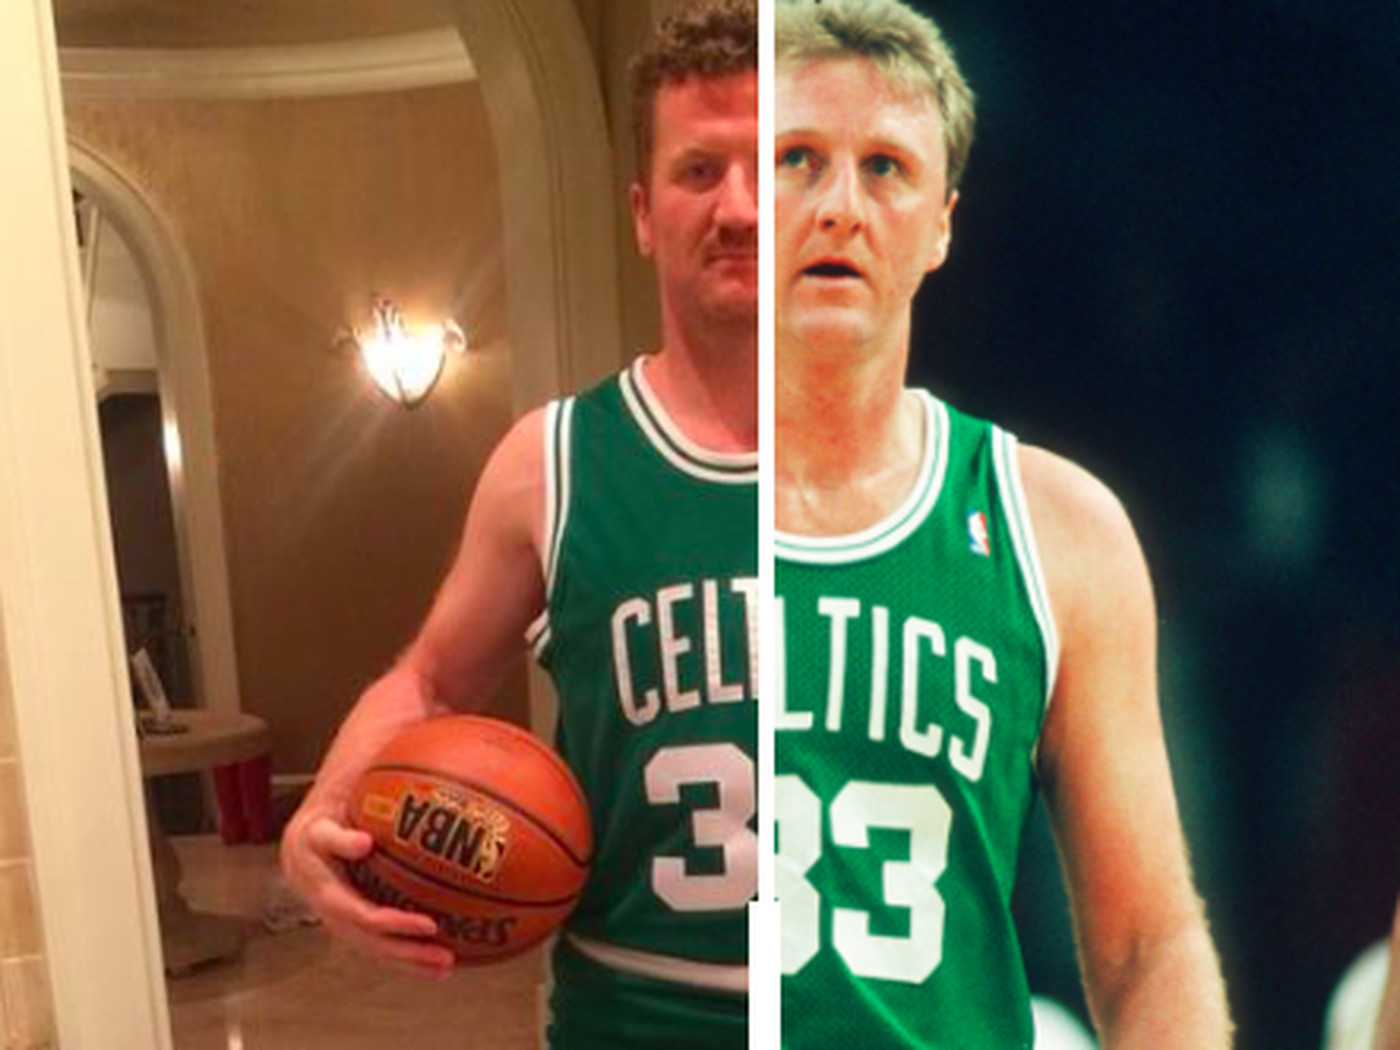 scott hartnell's larry bird halloween costume is insanely accurate